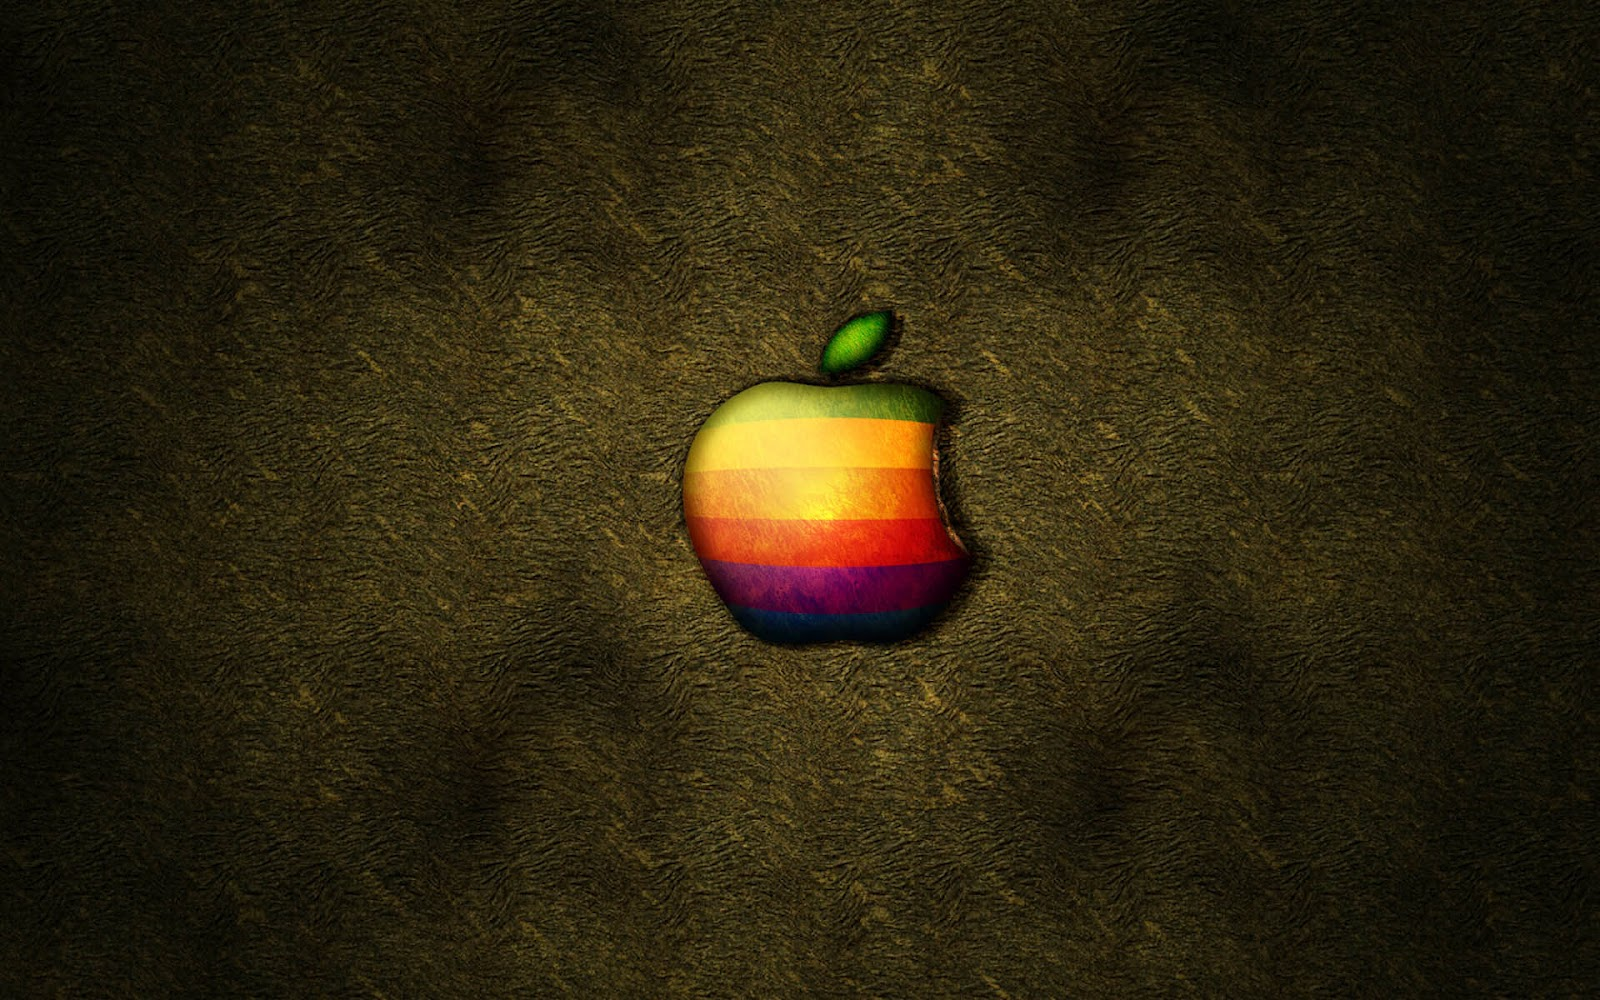 apple wallpaper hd 1080p apple mac wallpapers hd